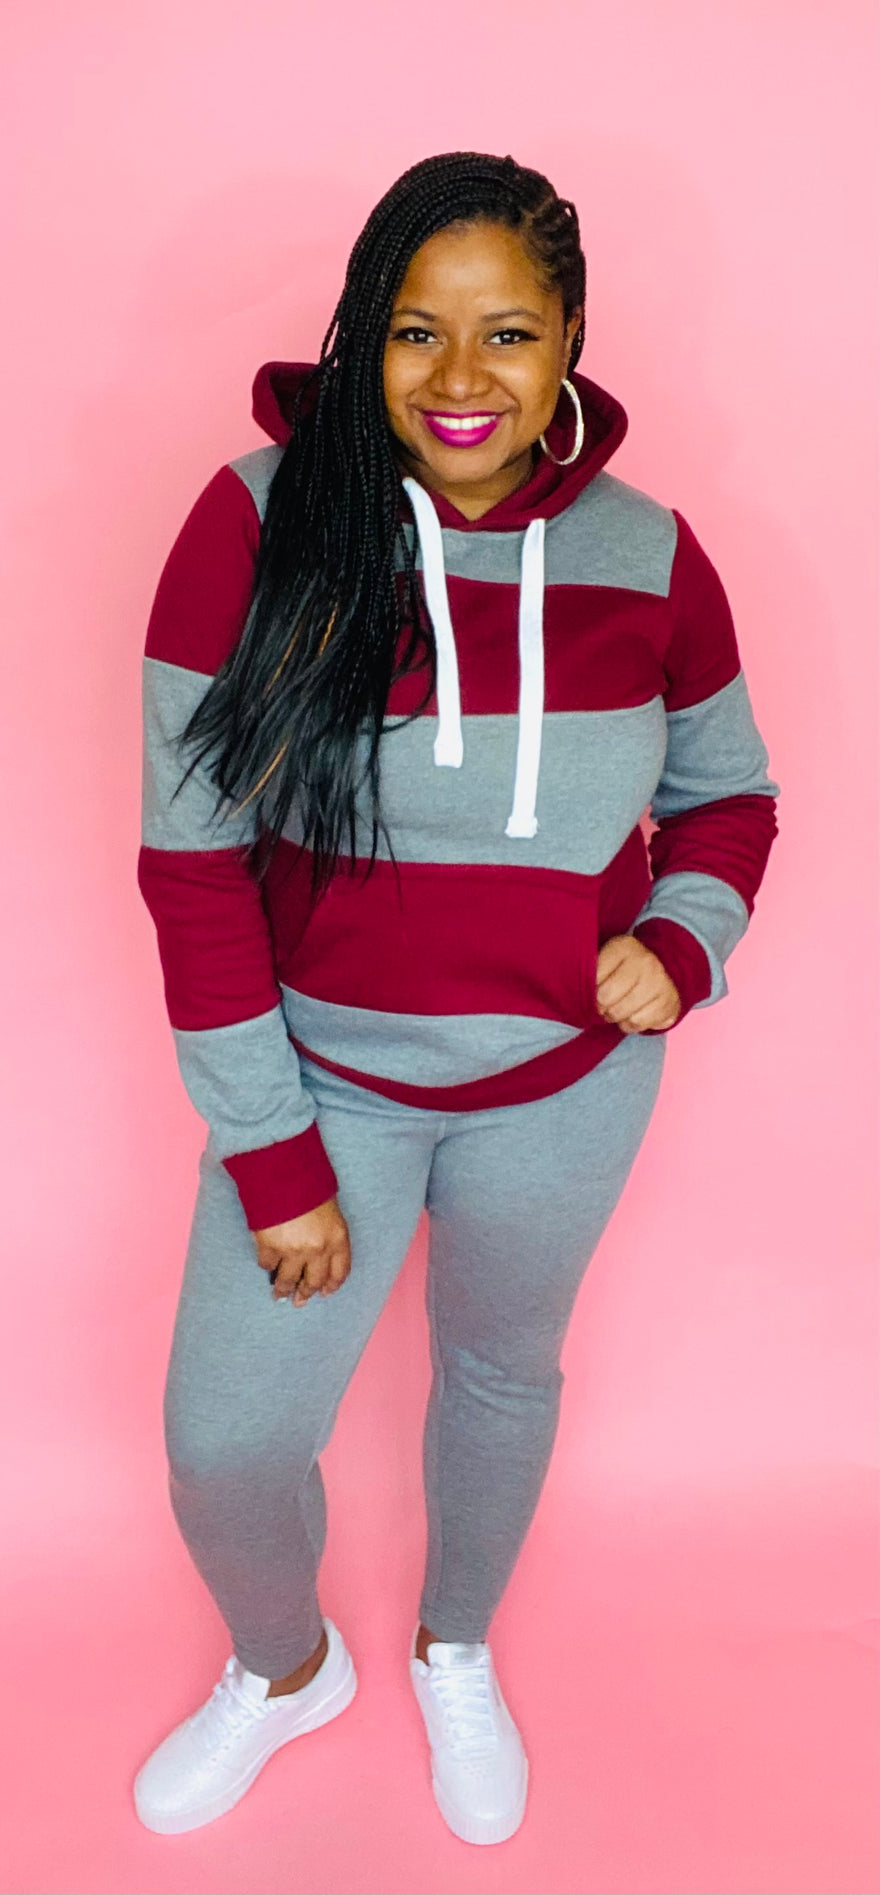 The Classic Striped Sweatsuit (Burgundy/Gray)